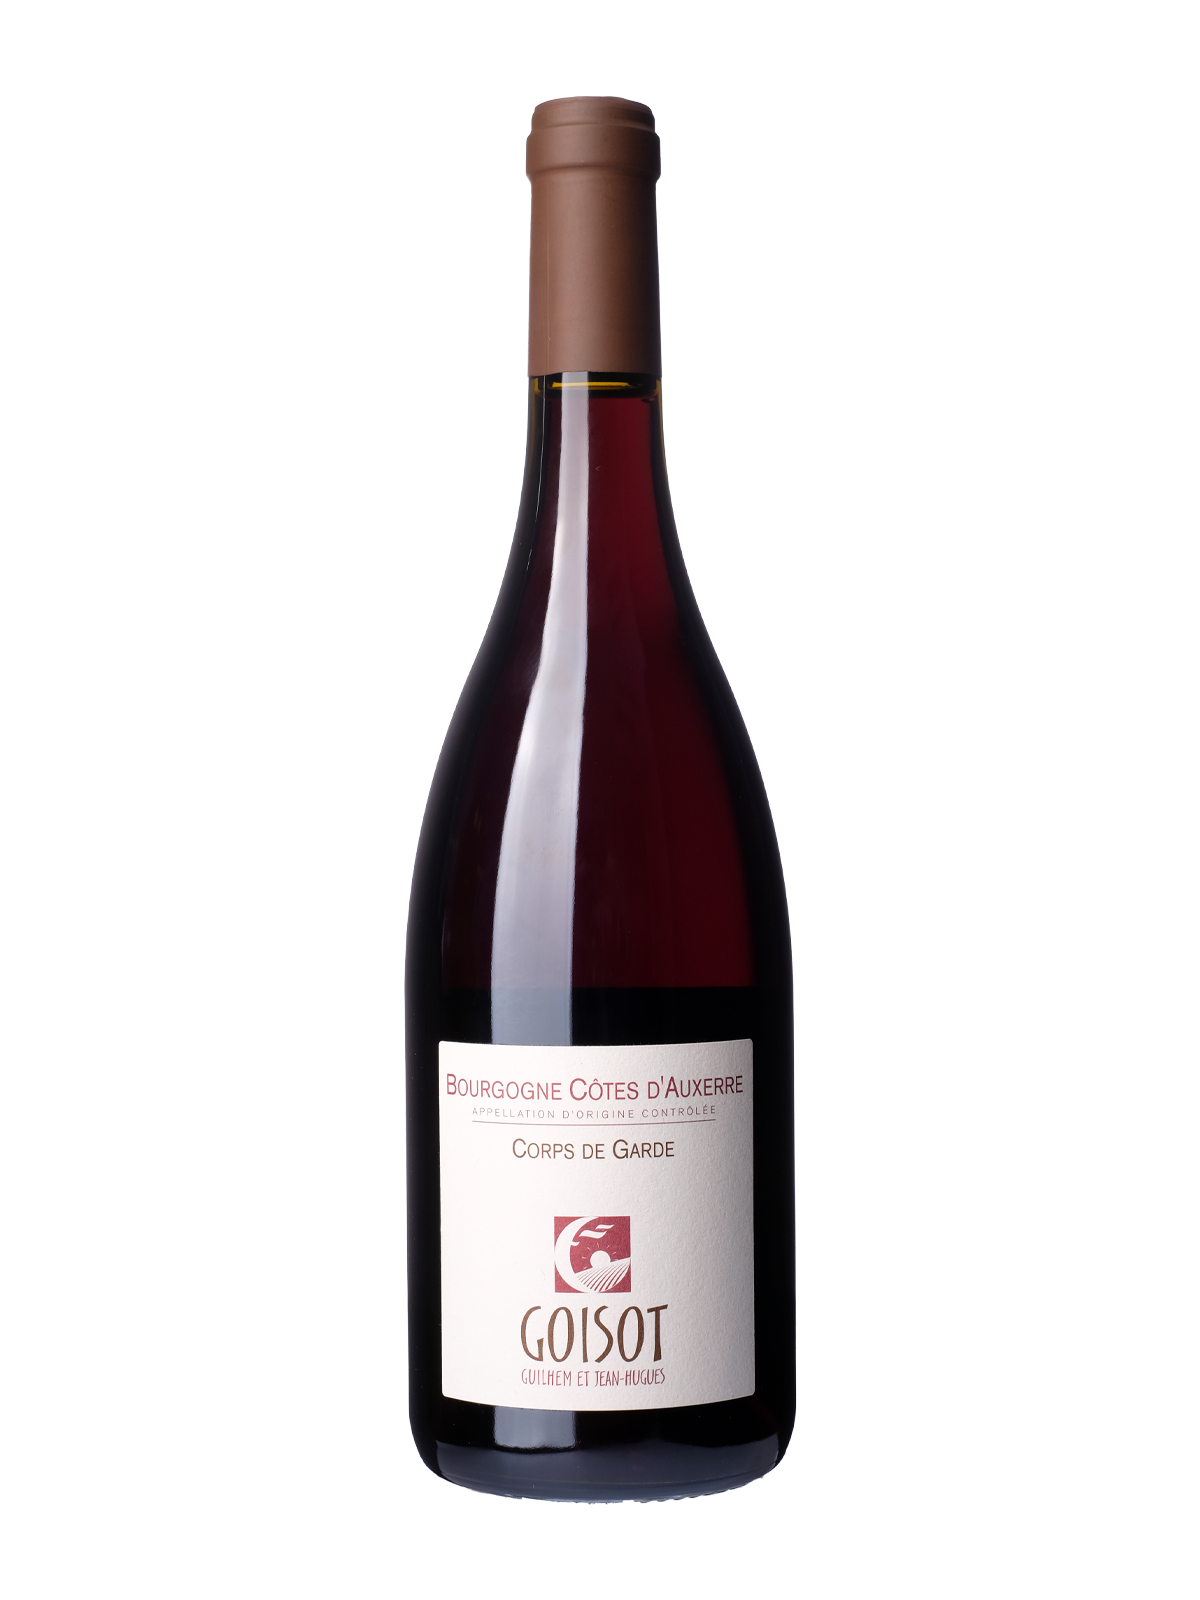 Goisot Bourgogne Cotes D'Auxerre | Red Wine | France